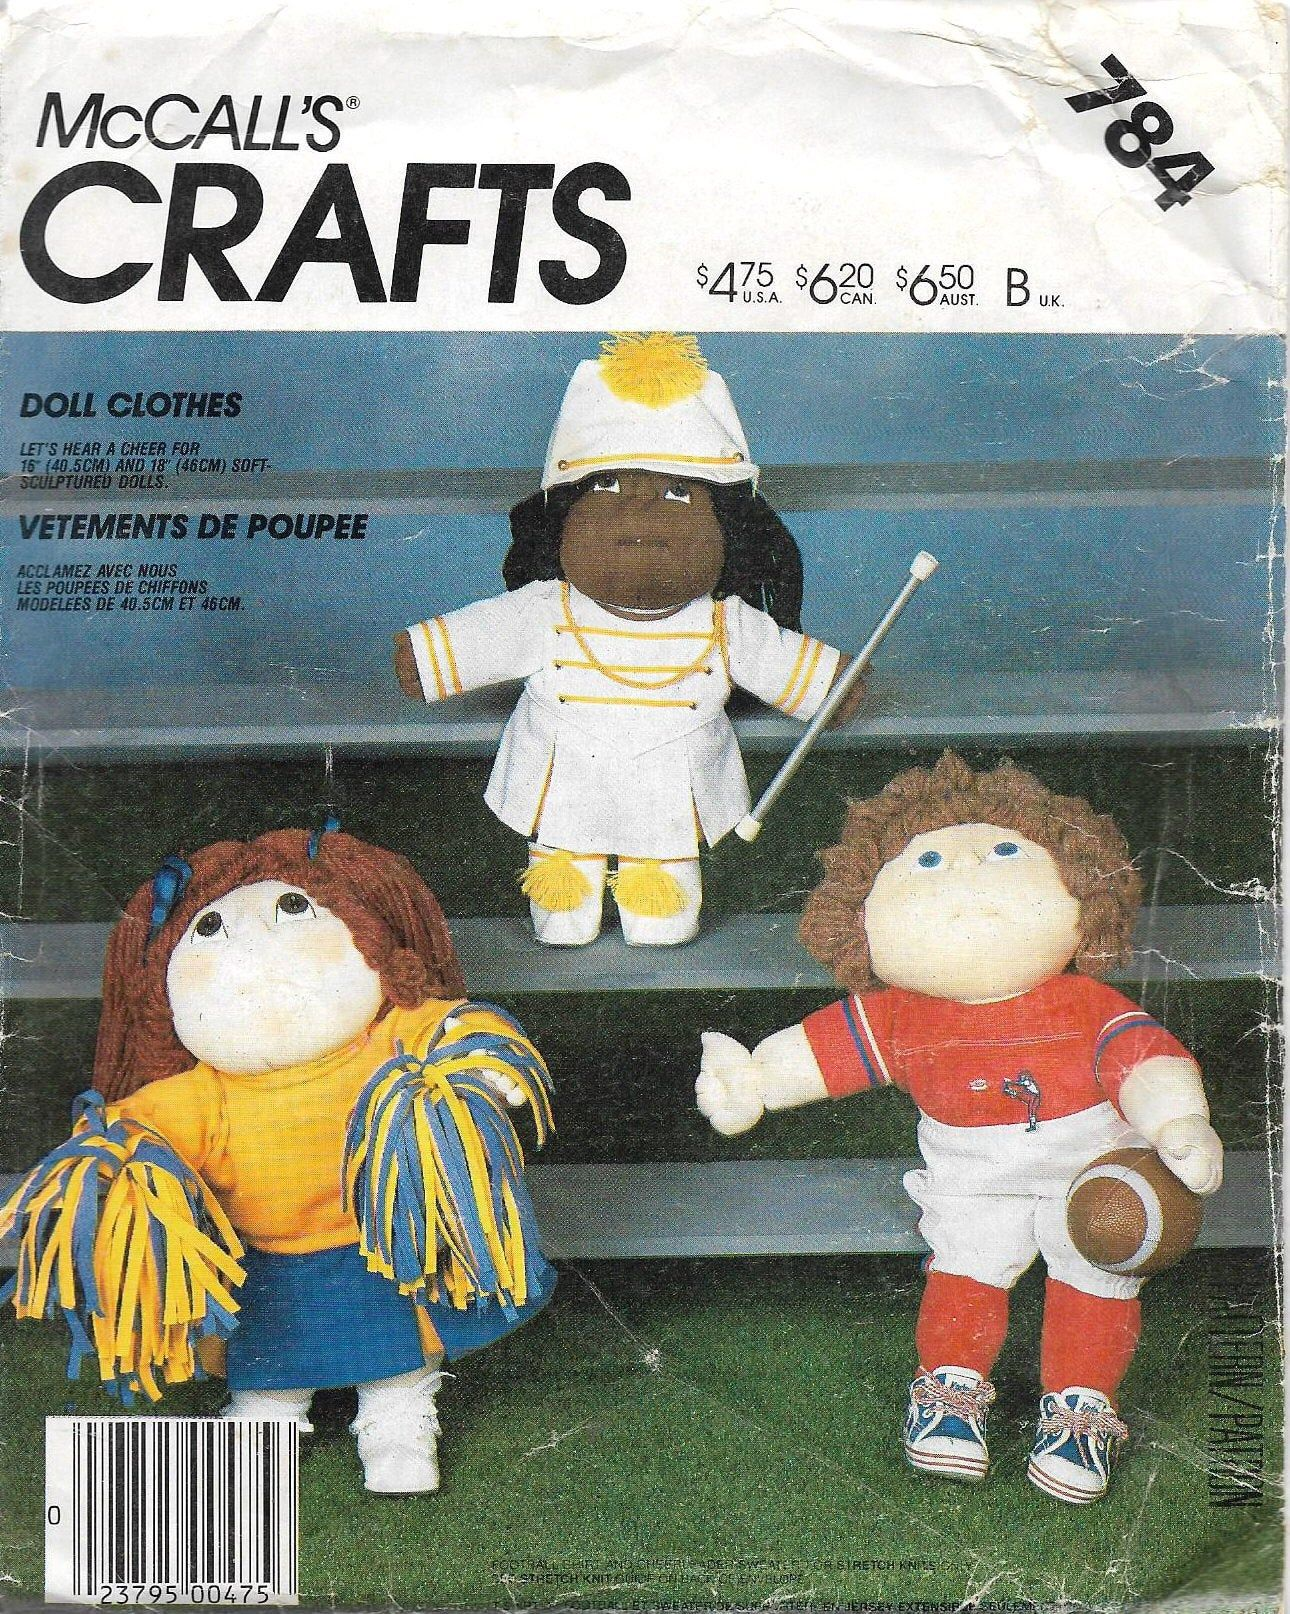 Uncut, 16-18 Inch Doll Clothes, Vintage Sewing Pattern, Mccalls Craft 784, fits Stuffed Soft Sculptured, Football, Cheerleader, Band Leader